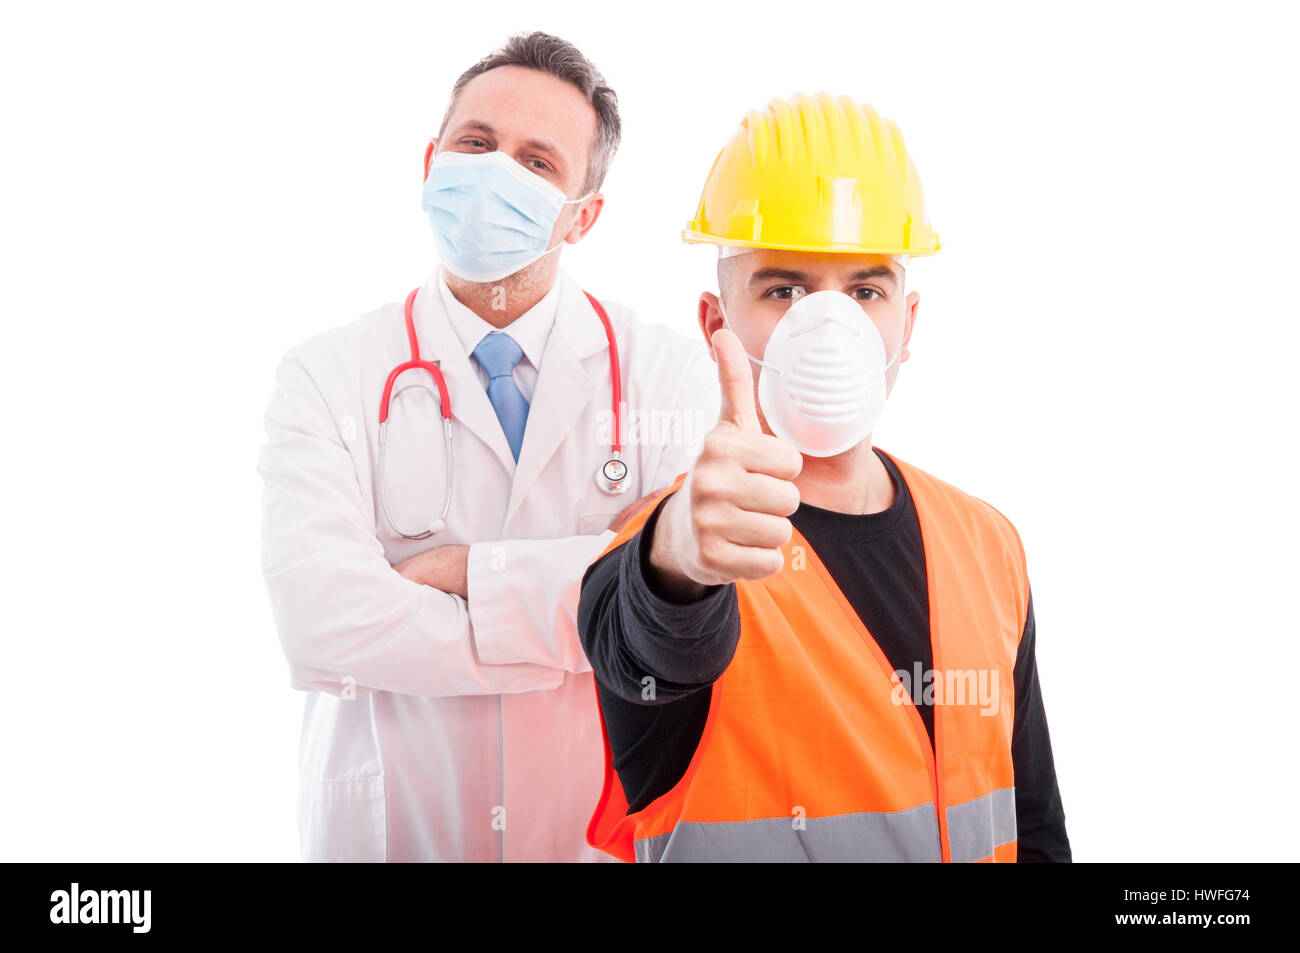 Trustworthy constructor and doctor showing thumb up being confident isolated on white background - Stock Image